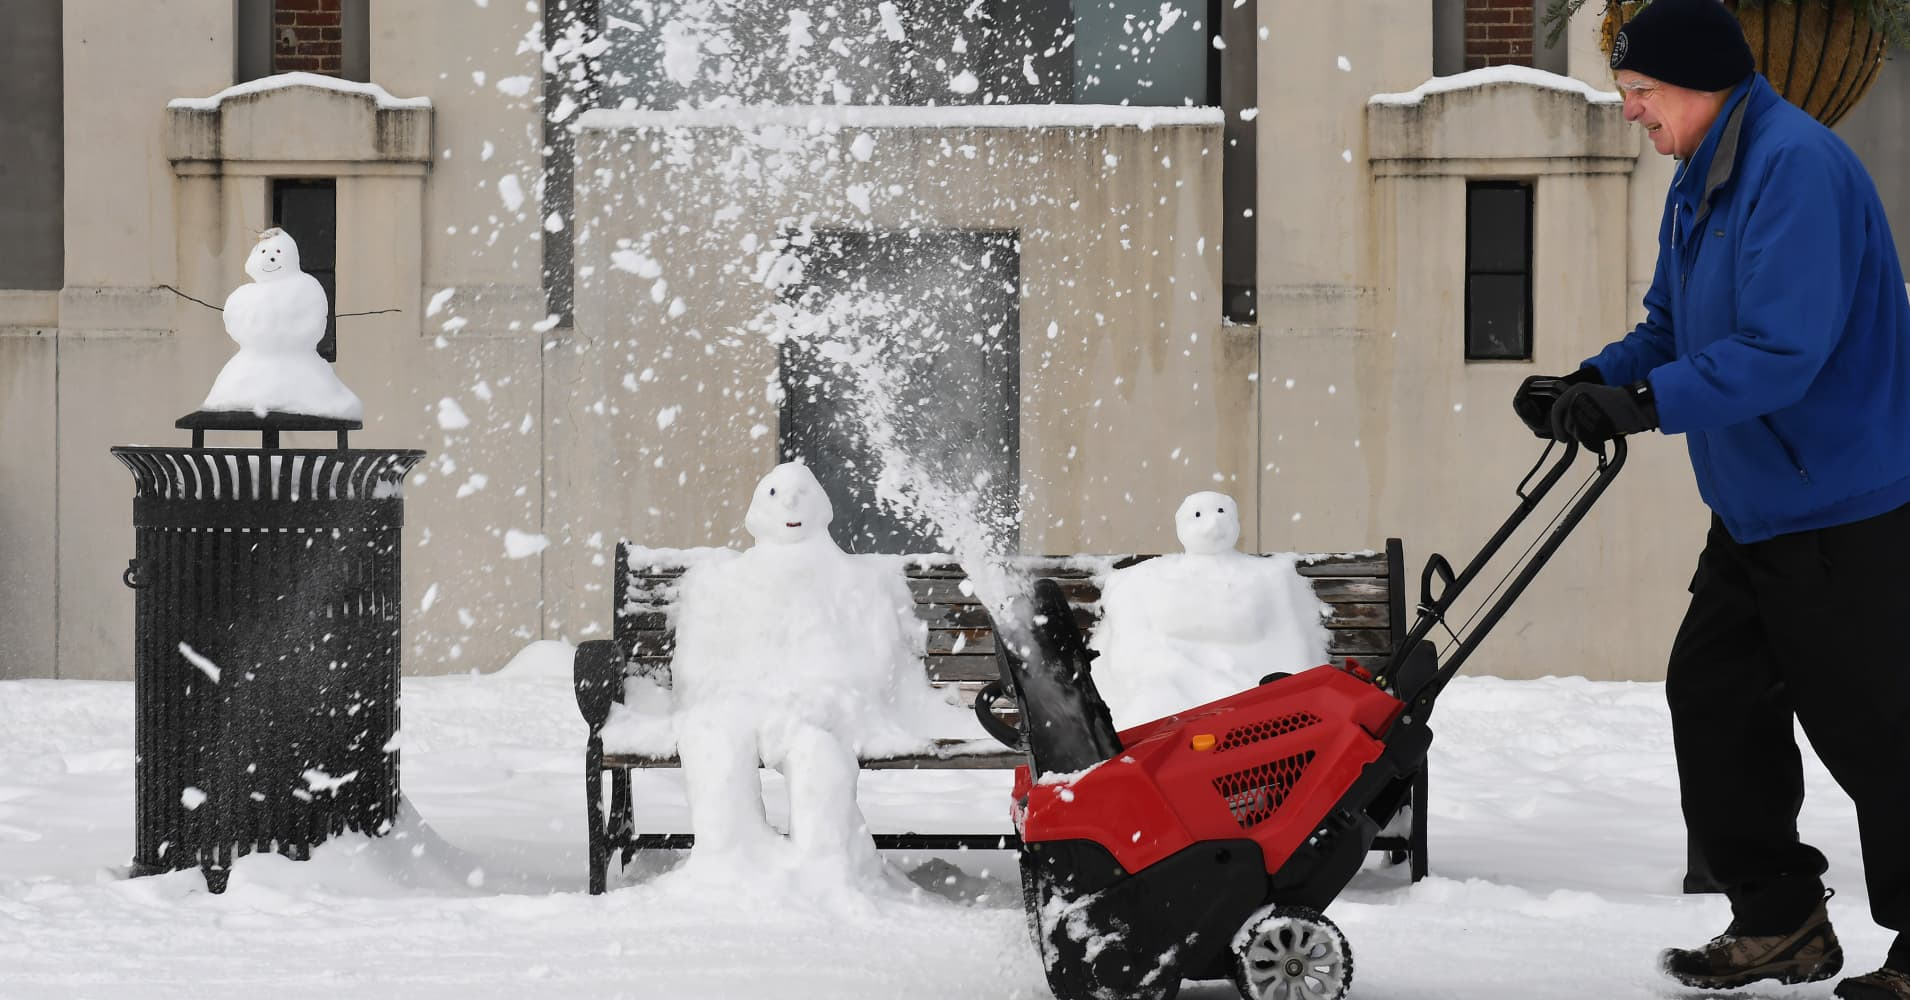 Weekend winter storm sweeping from Midwest to New England